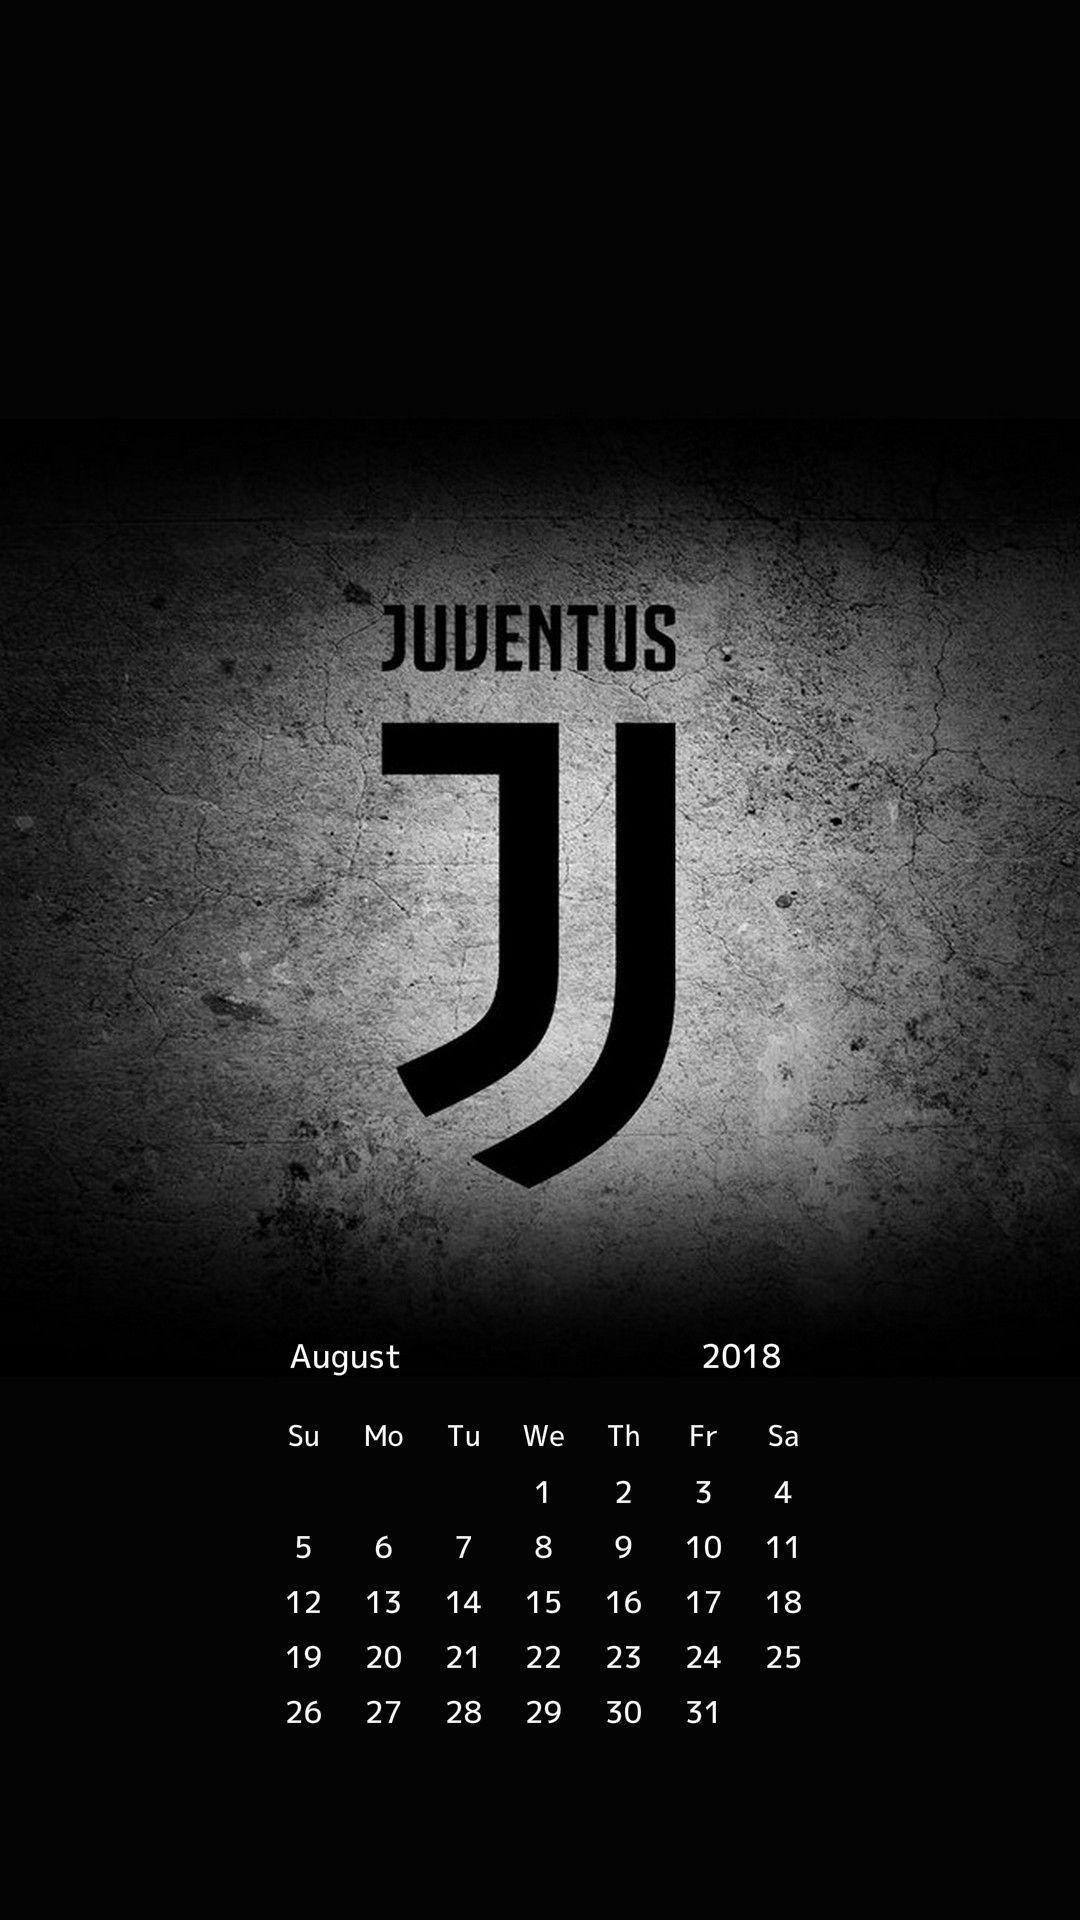 august 2018 iphone juventus wallpaper wall piks in 2019 1080x1920